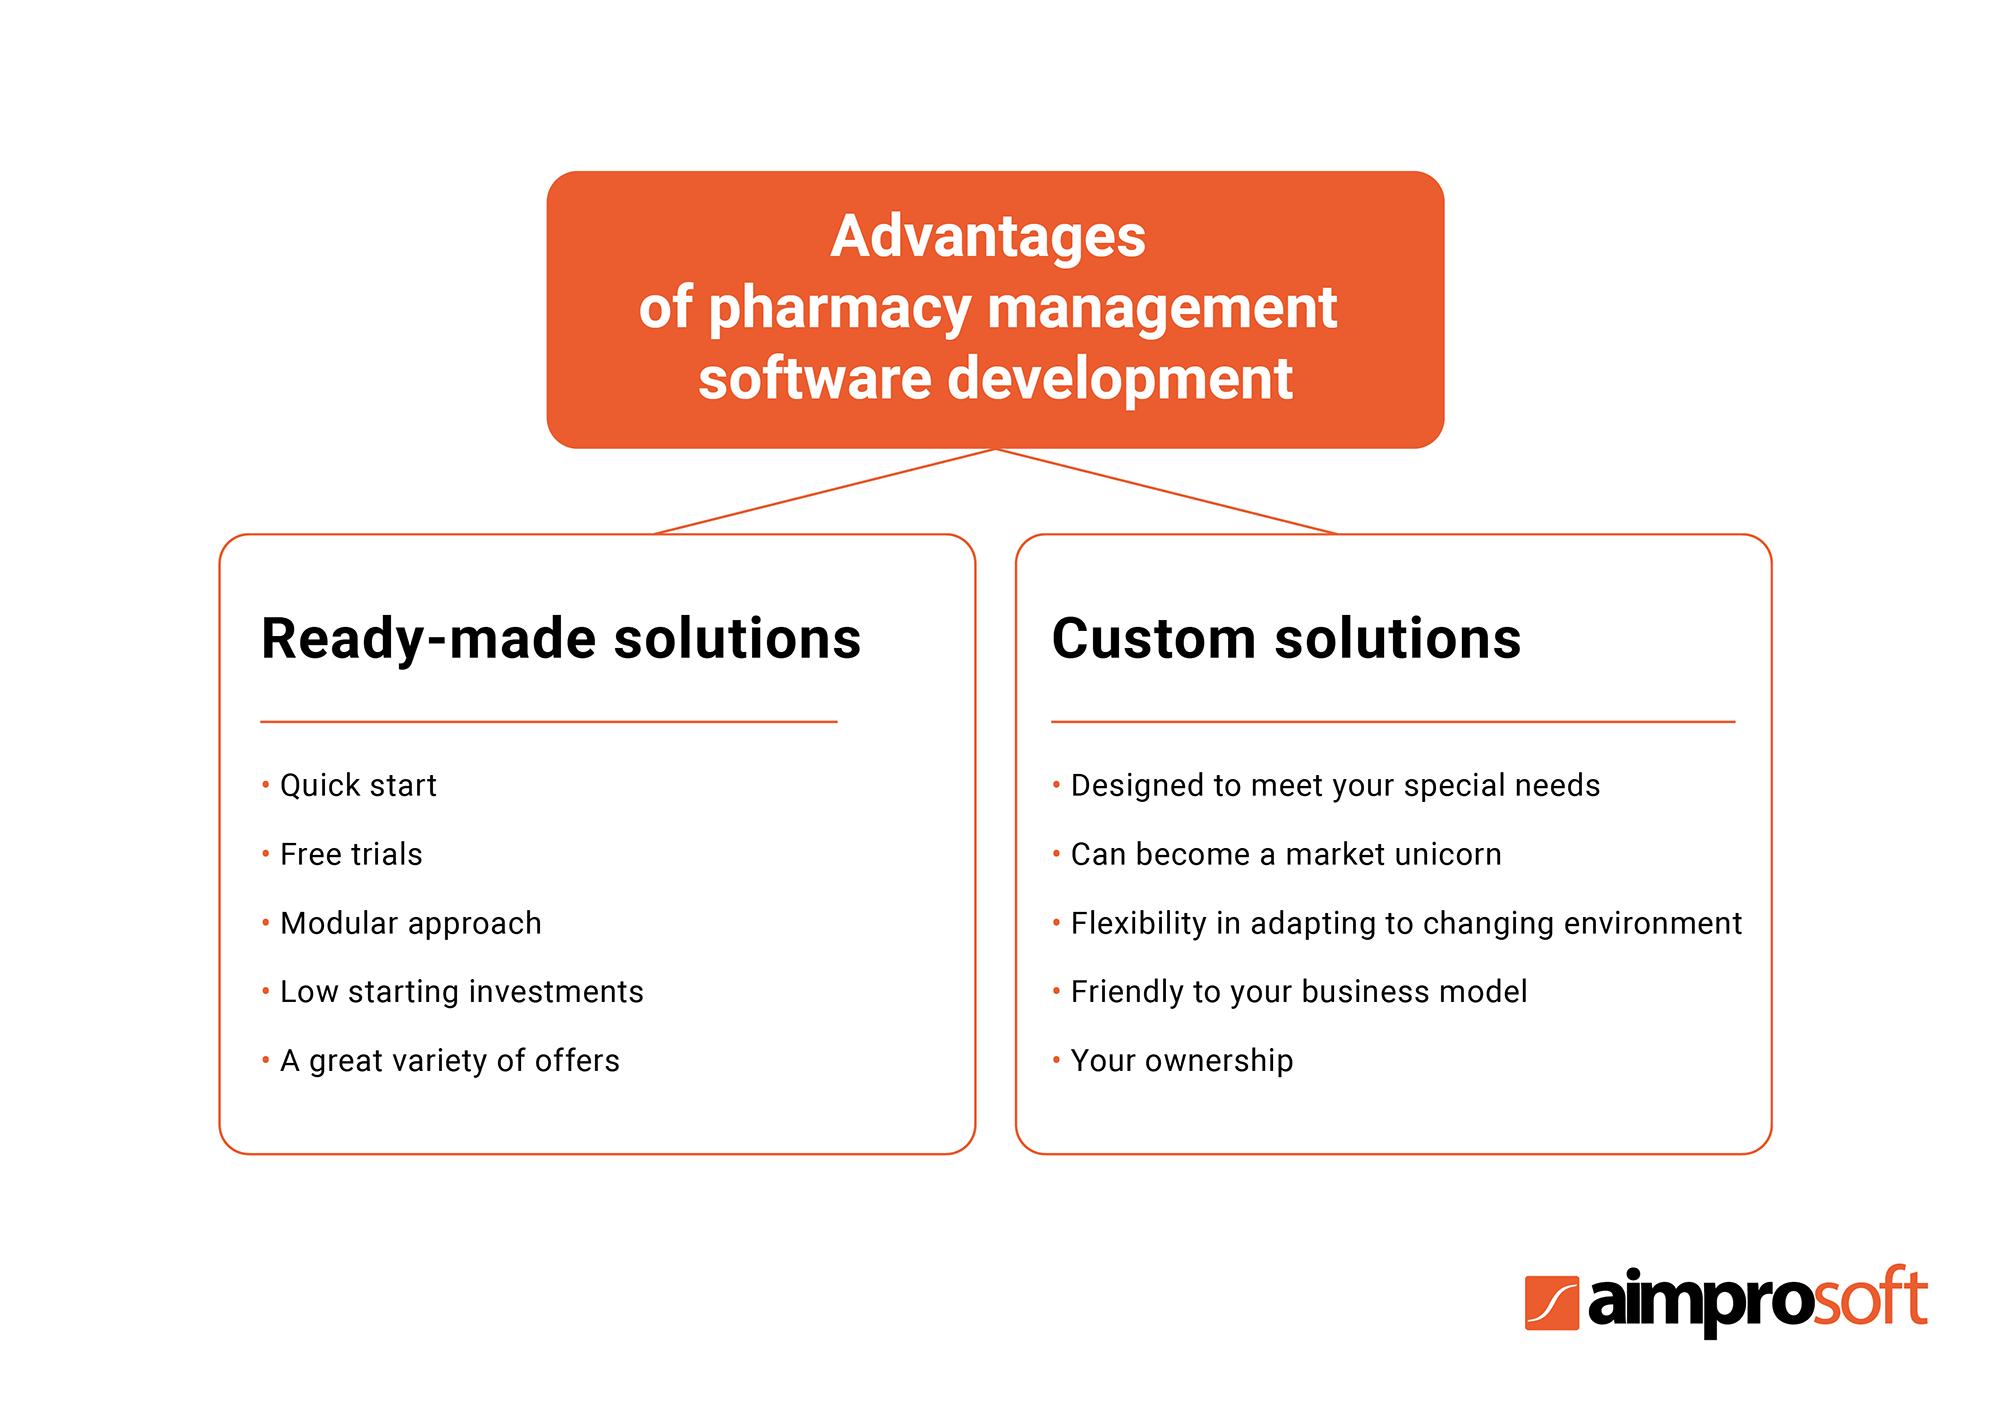 Advantages of pharmacy management software development